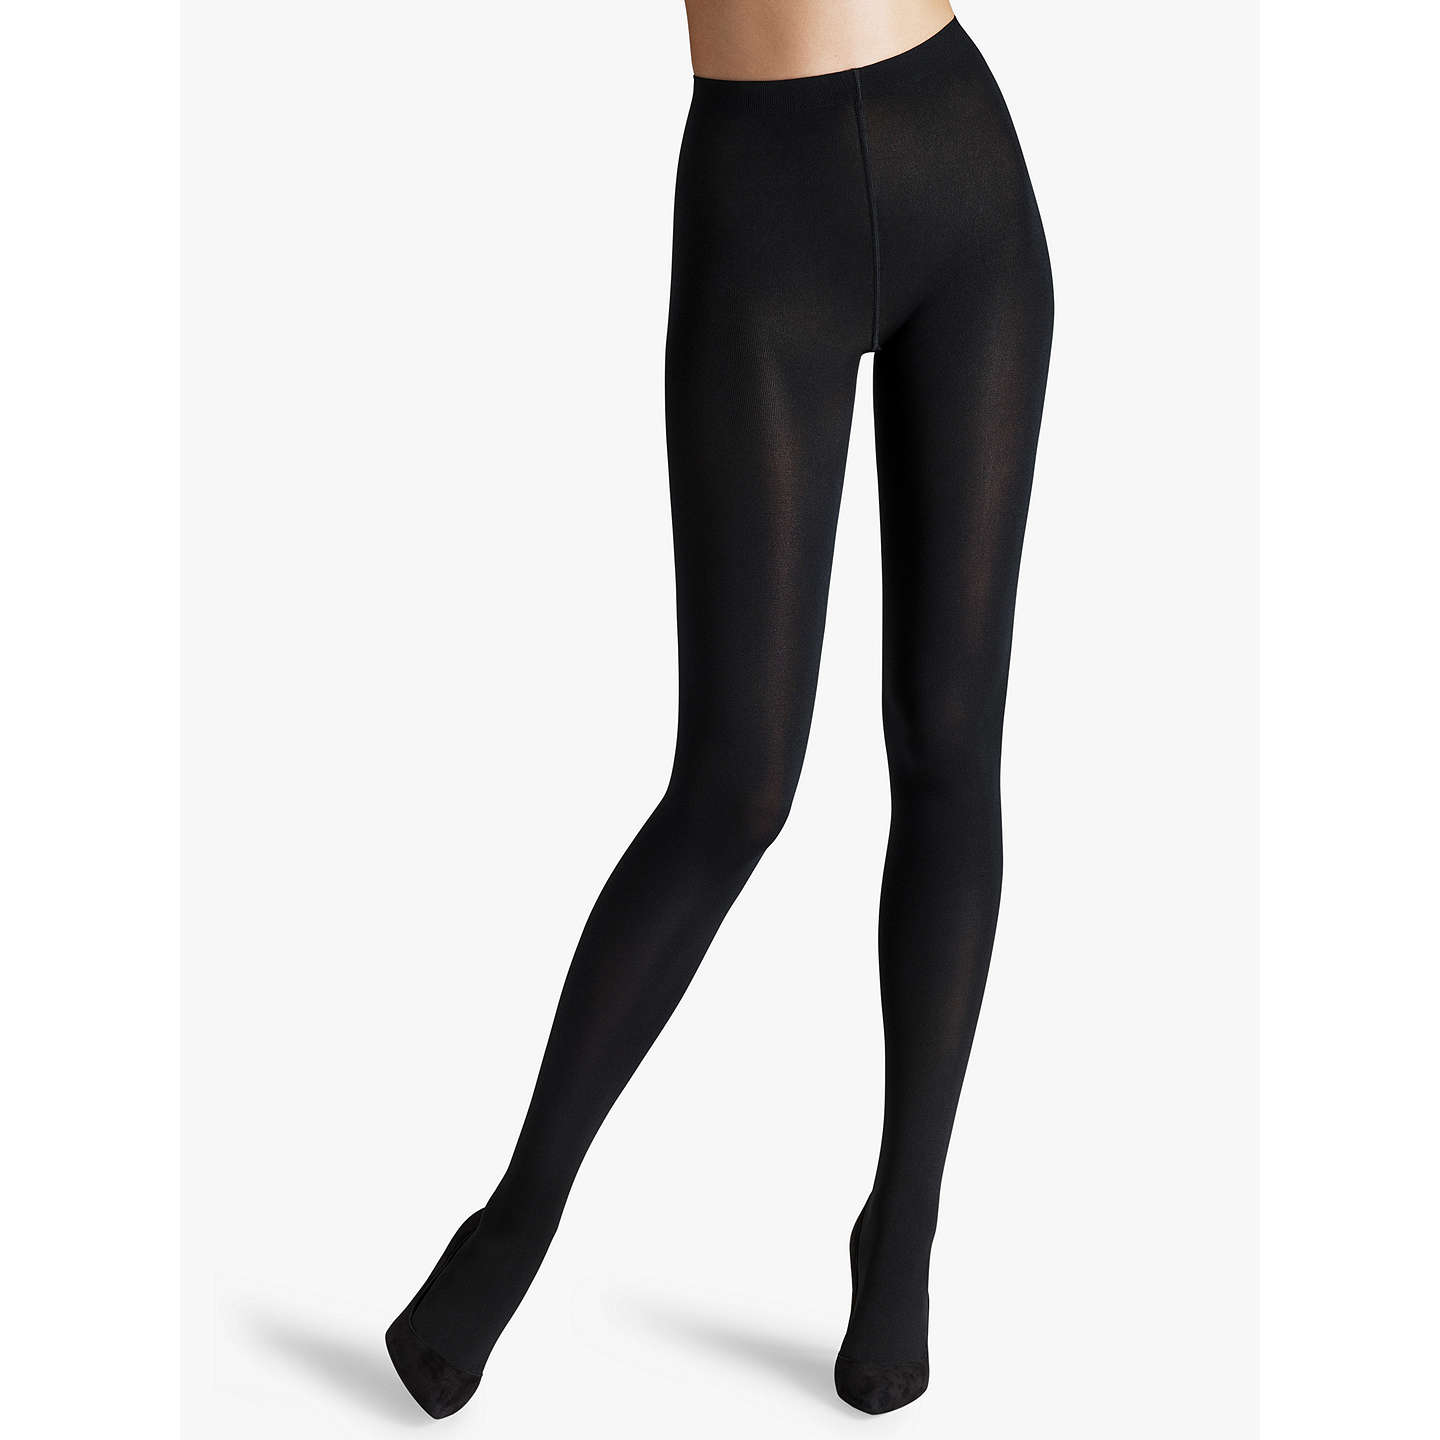 Outlet Finishline Wolford Mat Opaque 80 Leggings w/ Tags Sale Footlocker Pictures Free Shipping New Arrival 0ICDLpgsvR